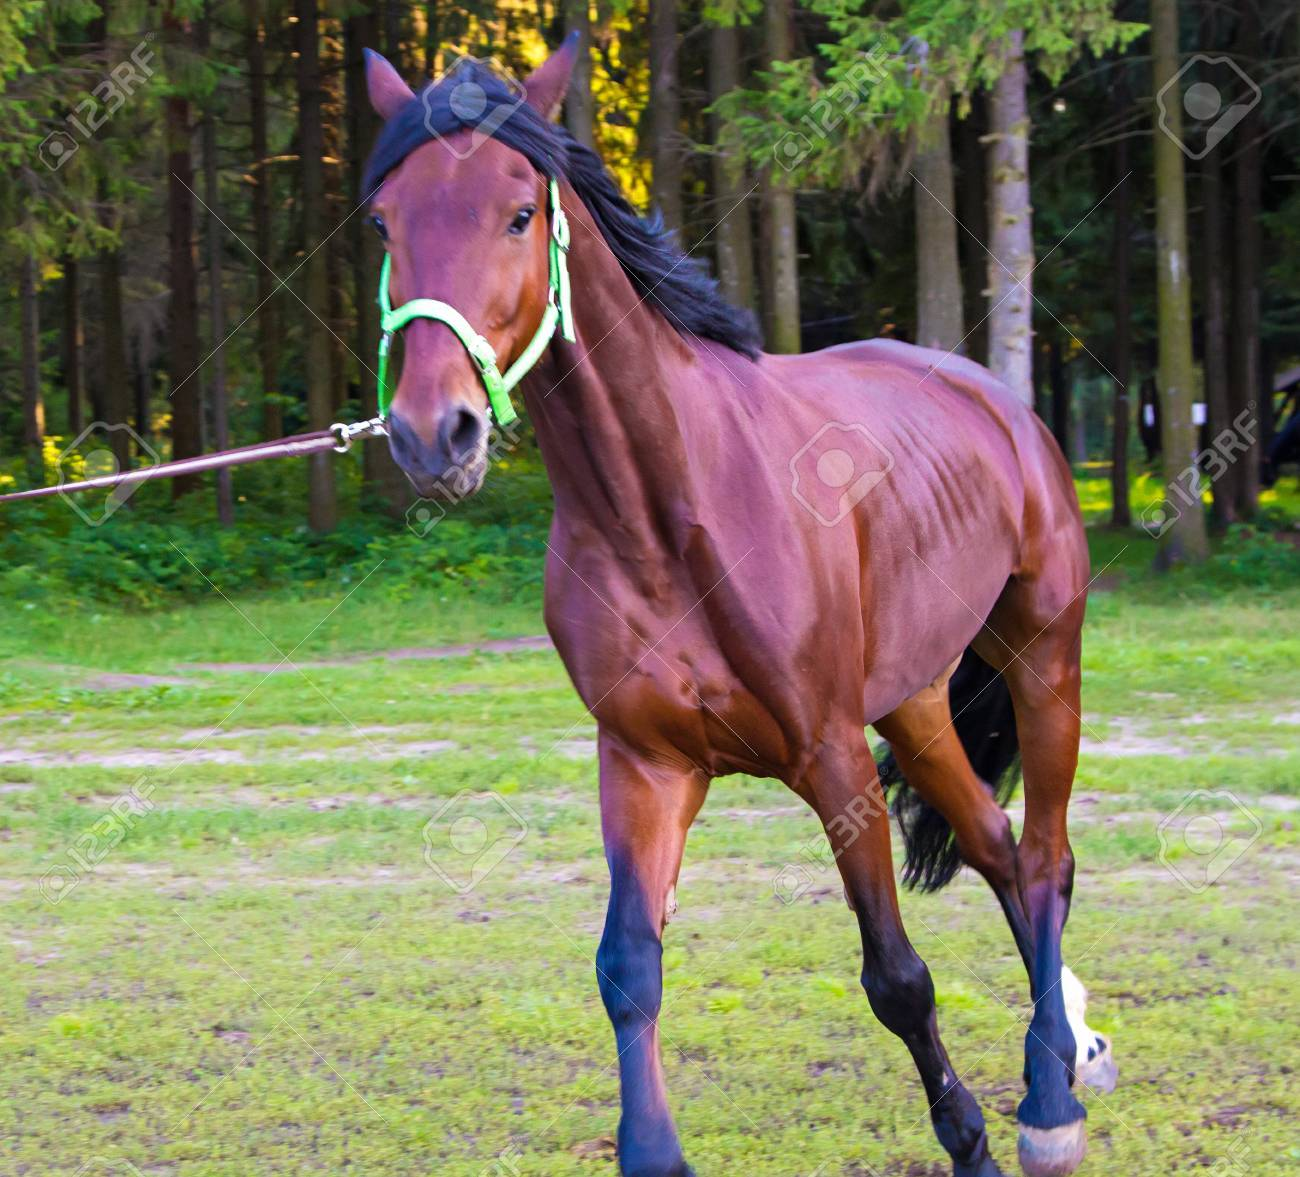 Light Brown Horse Running Photo Of Horses In Nature Stock Photo Picture And Royalty Free Image Image 48491165